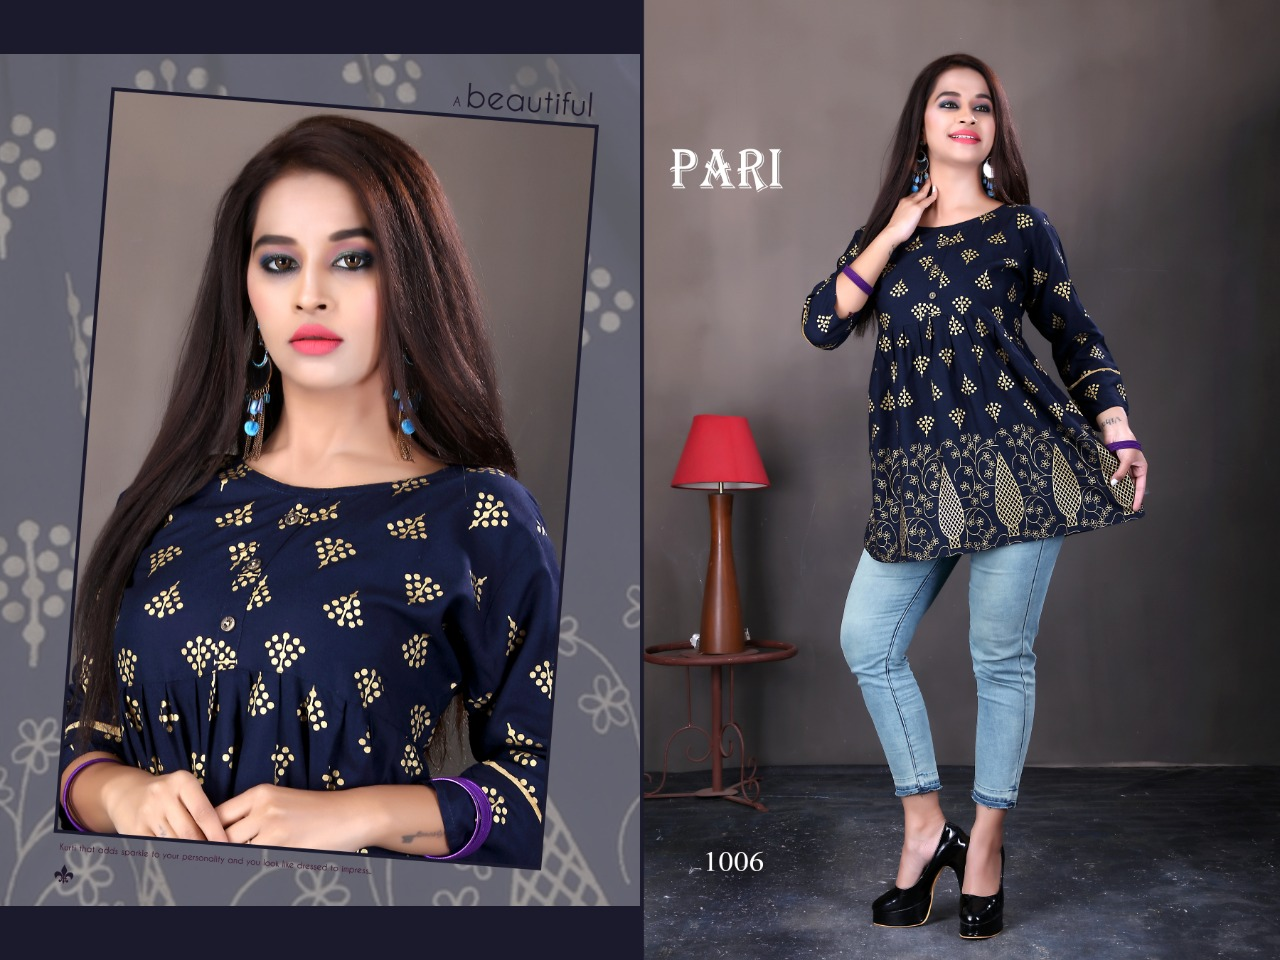 Pari Short Tops Wholesale Catalog 8 Pcs 6 - Pari Short Tops Wholesale Catalog 8 Pcs